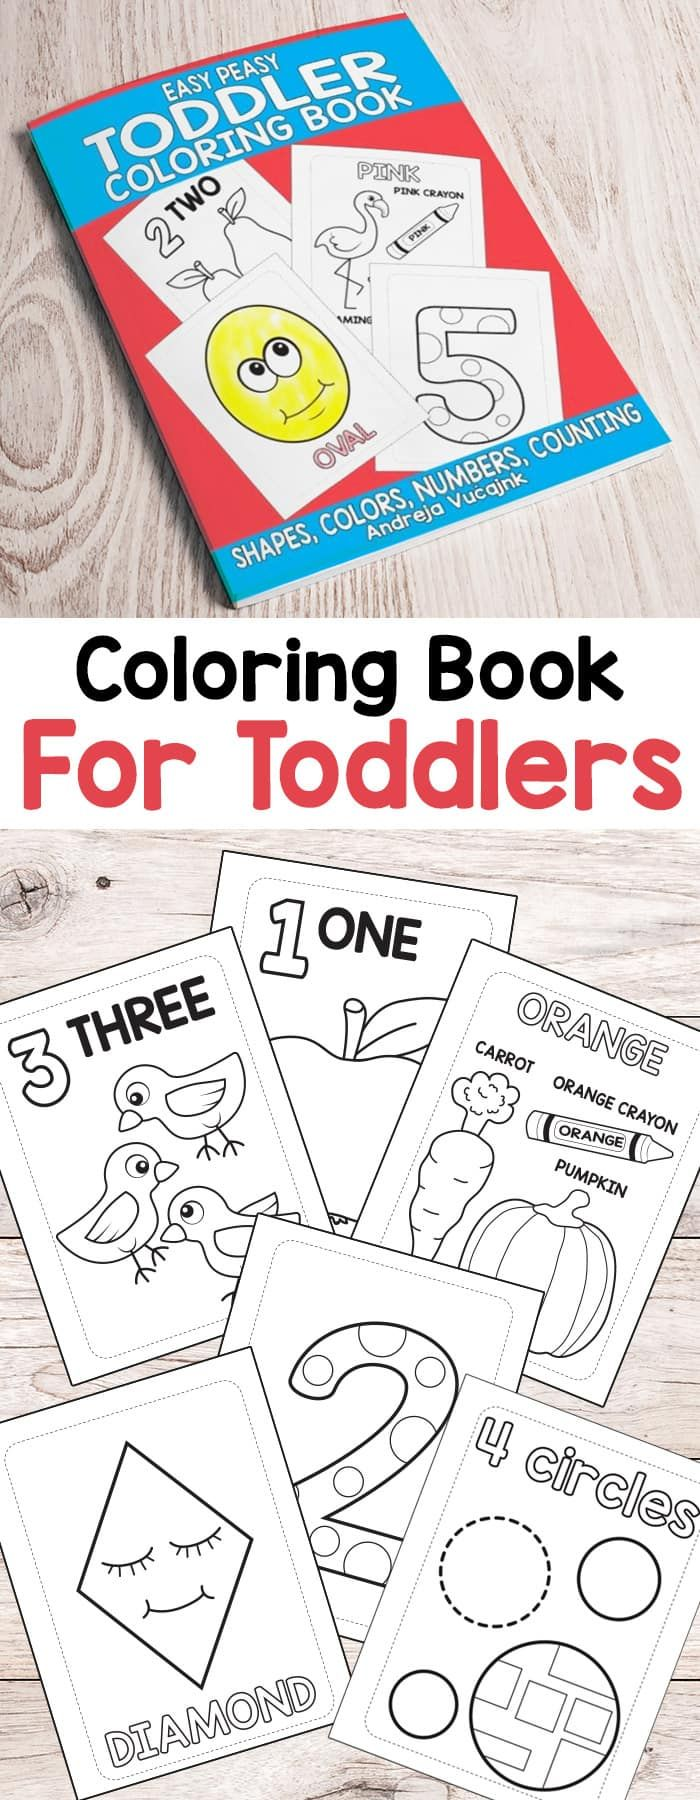 Easy peasy toddler coloring book activities school and daycare ideas